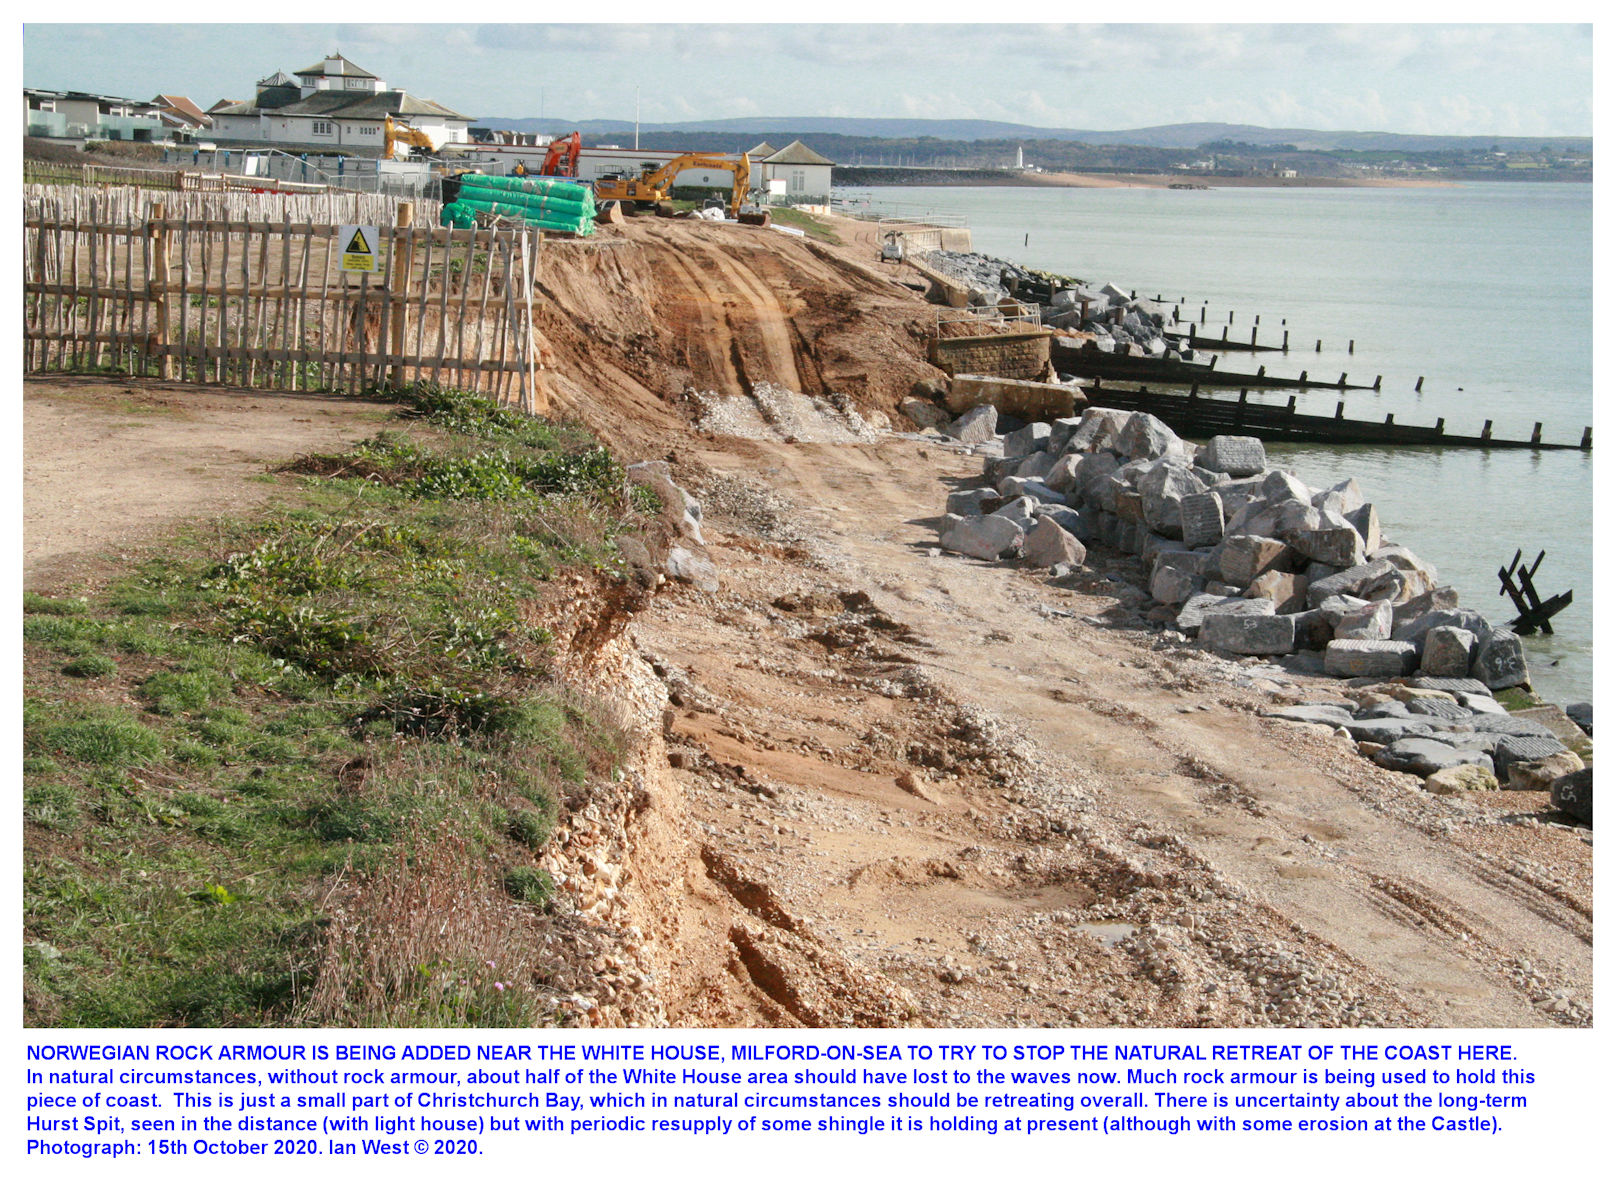 Work in progress on repair of an erosional gap in the sea defences, near the White House, 15th October, 2020, Ian West